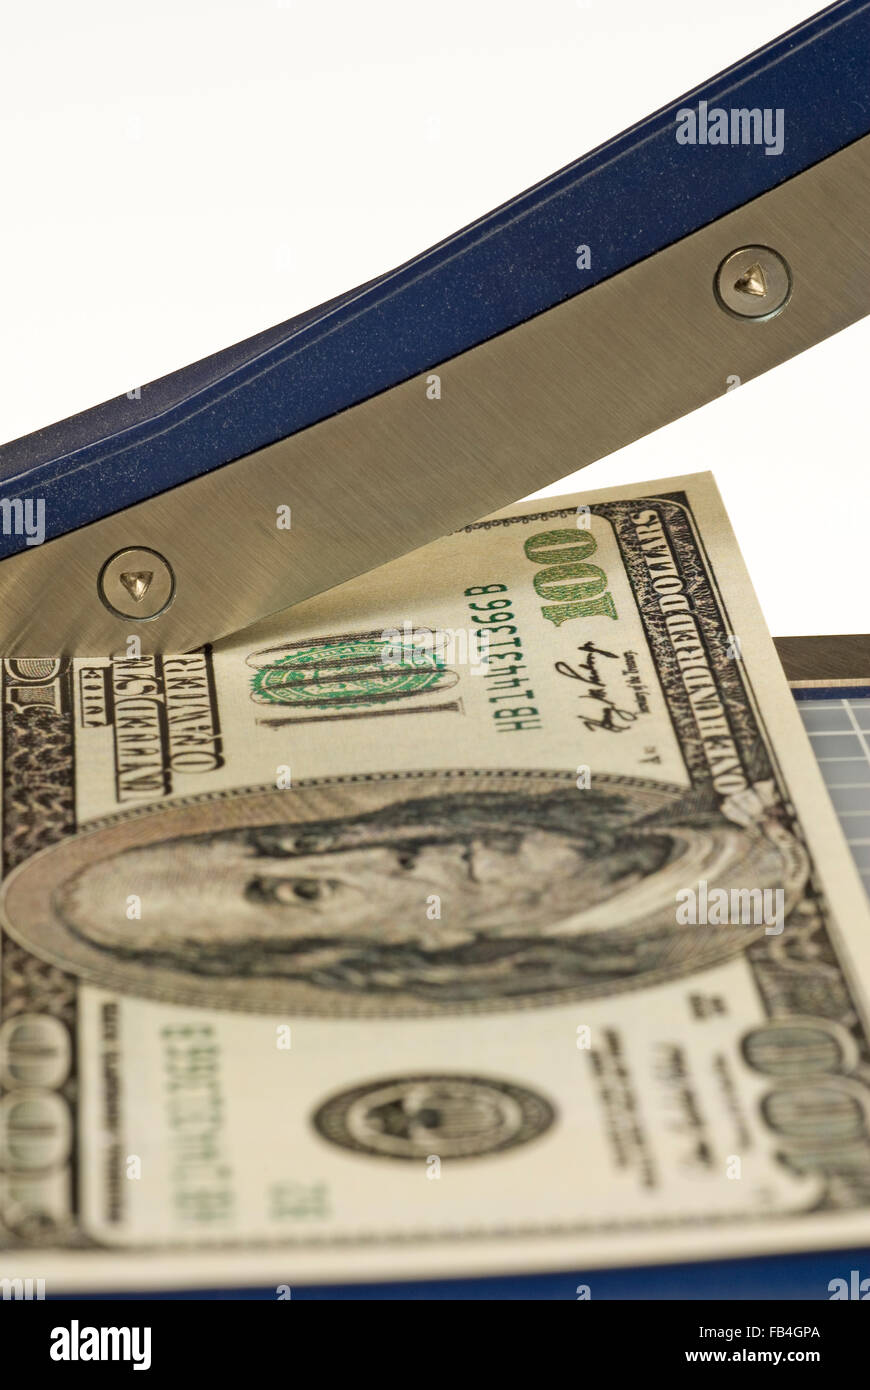 Paper Cutter Cutting a One Hundred Dollar Bill - Stock Image